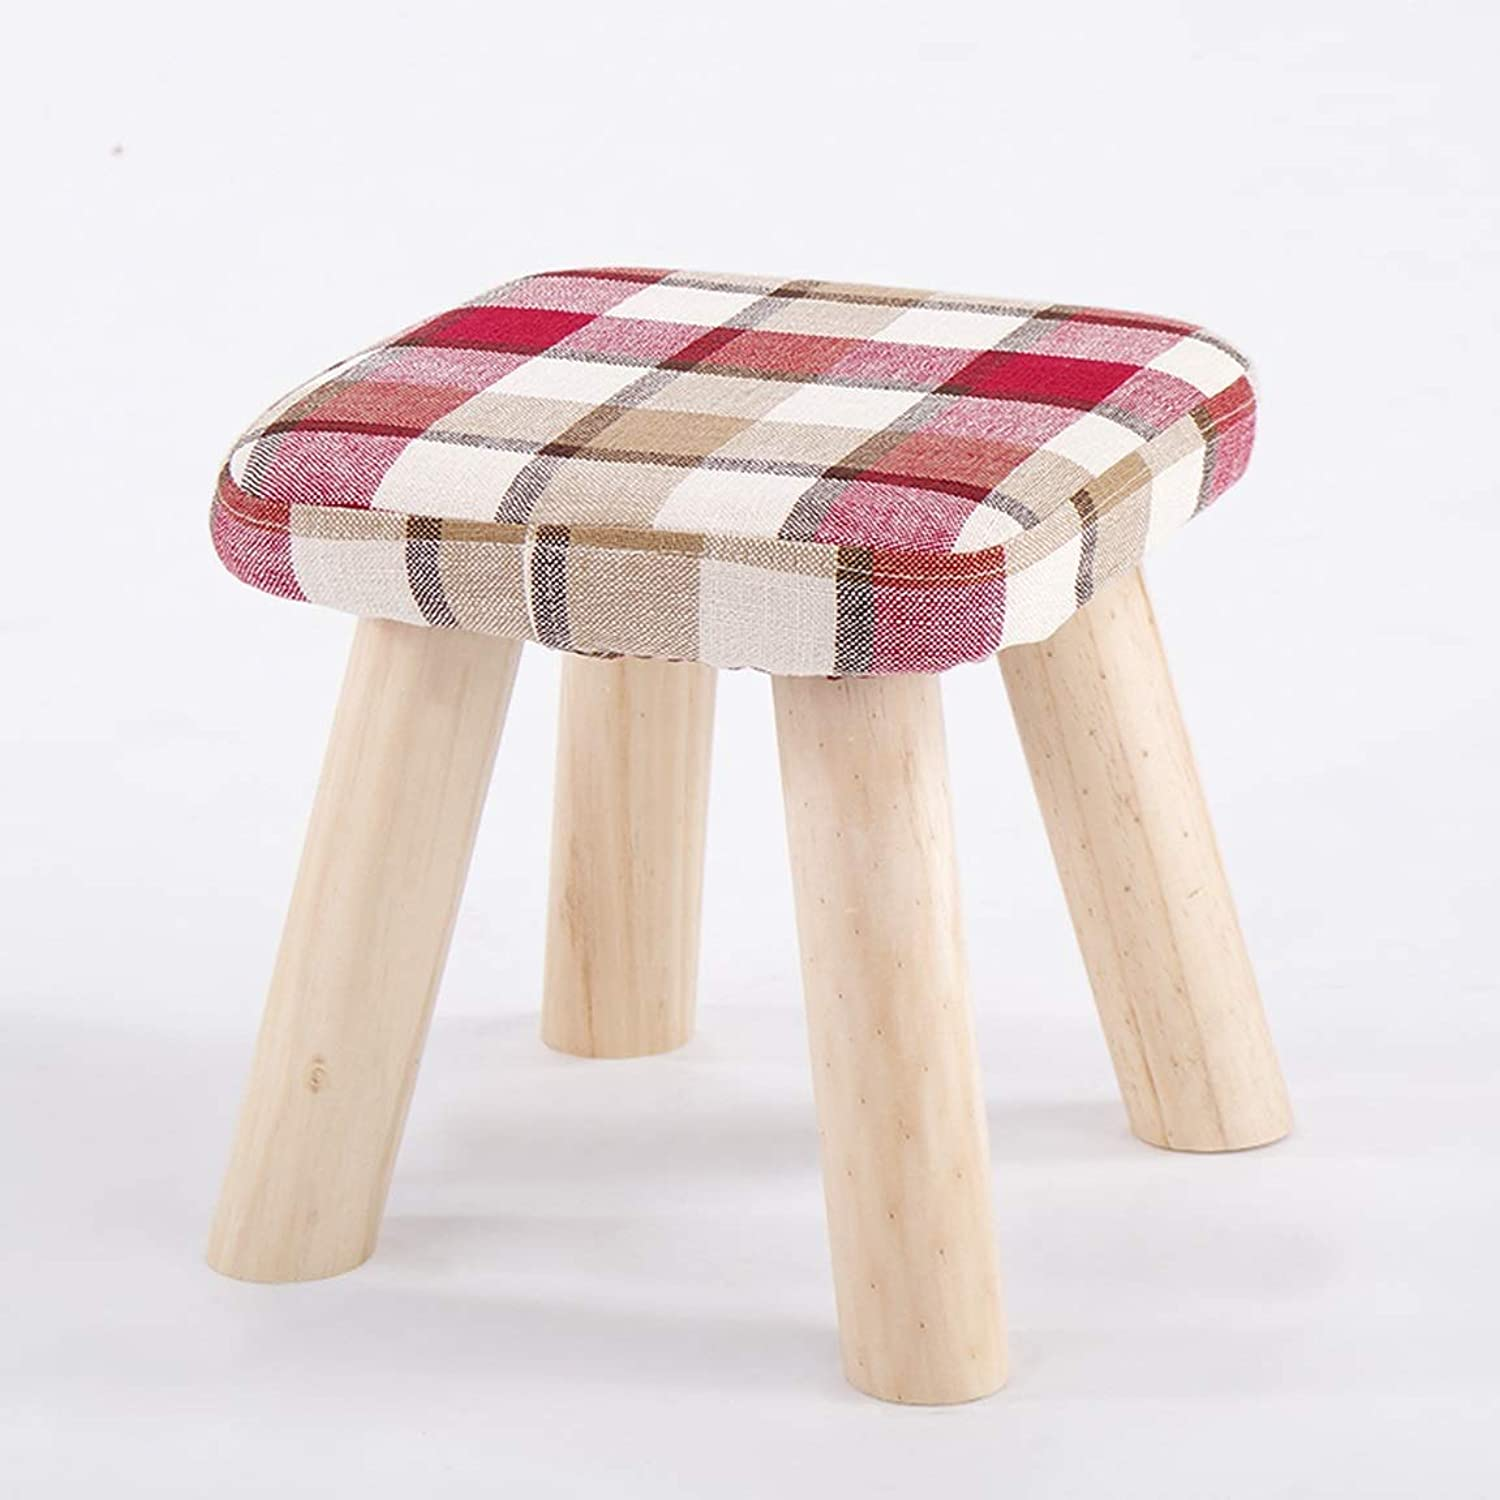 LRW Small Stool, Solid Tea, Tea Table, Sofa, Stool, Cloth, Stool, Stool, Low Stool, Fashion, shoes, Stools, Red Lattices. (Size   Height 28 cm)